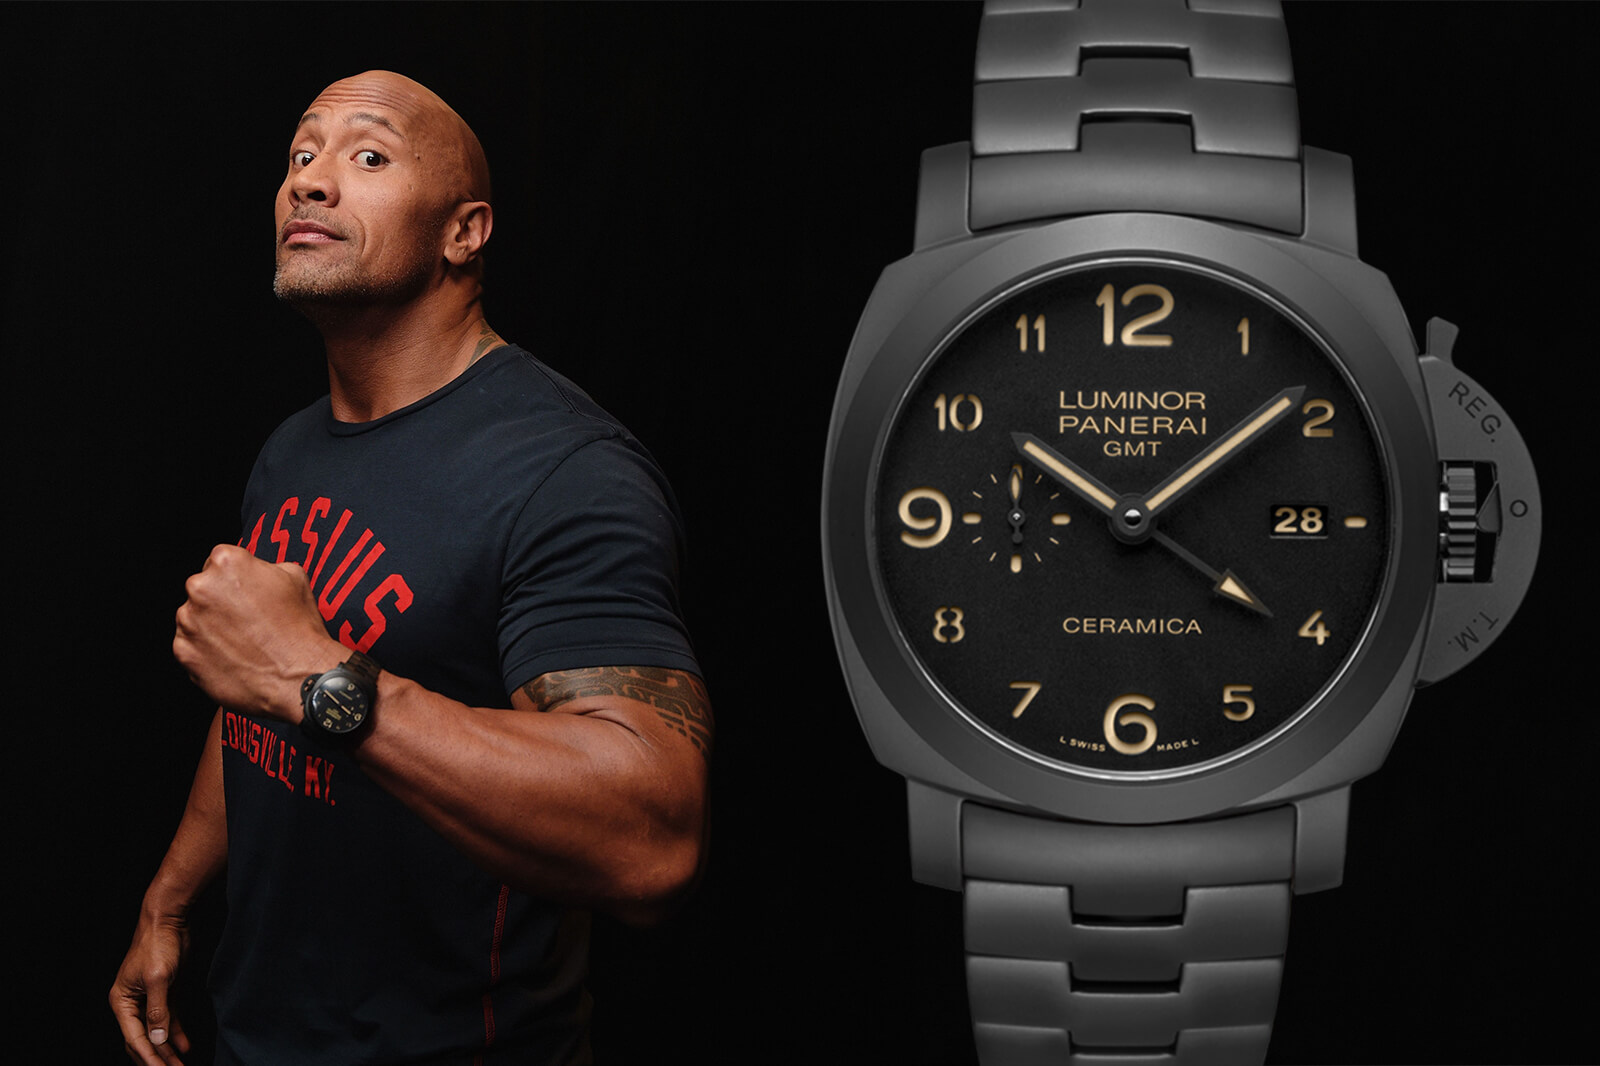 Dwayne Johnson Ceramic Luminor Panerai GMT